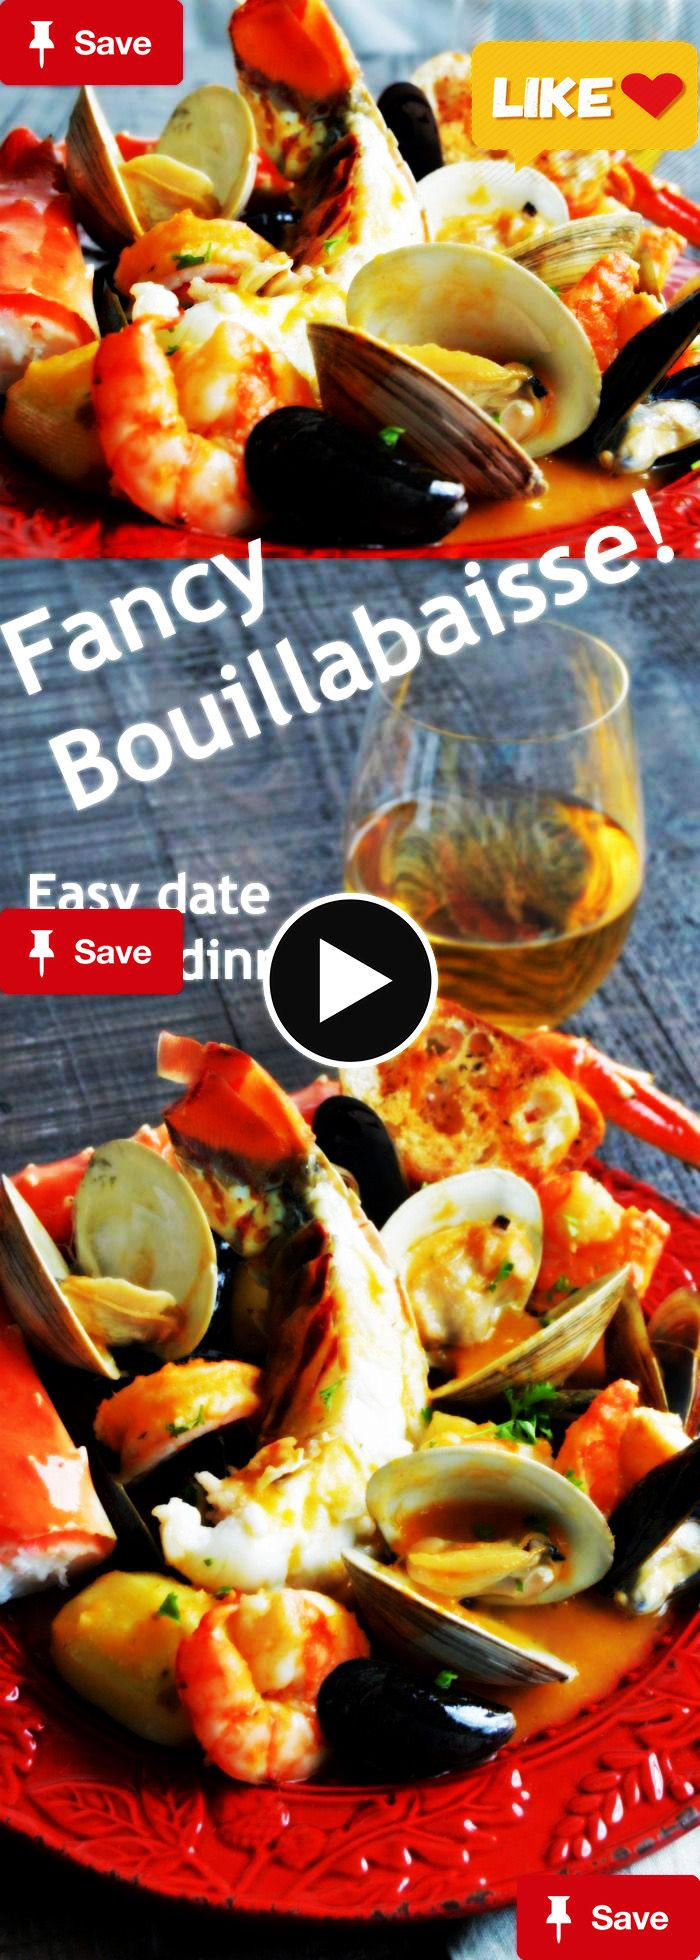 ancy shellfish, lobster crab, shrimp mussels and crab in a very flavorful homemade broth that can be on the table in less than 45 minutes! via Michele ~ West Via Midwest